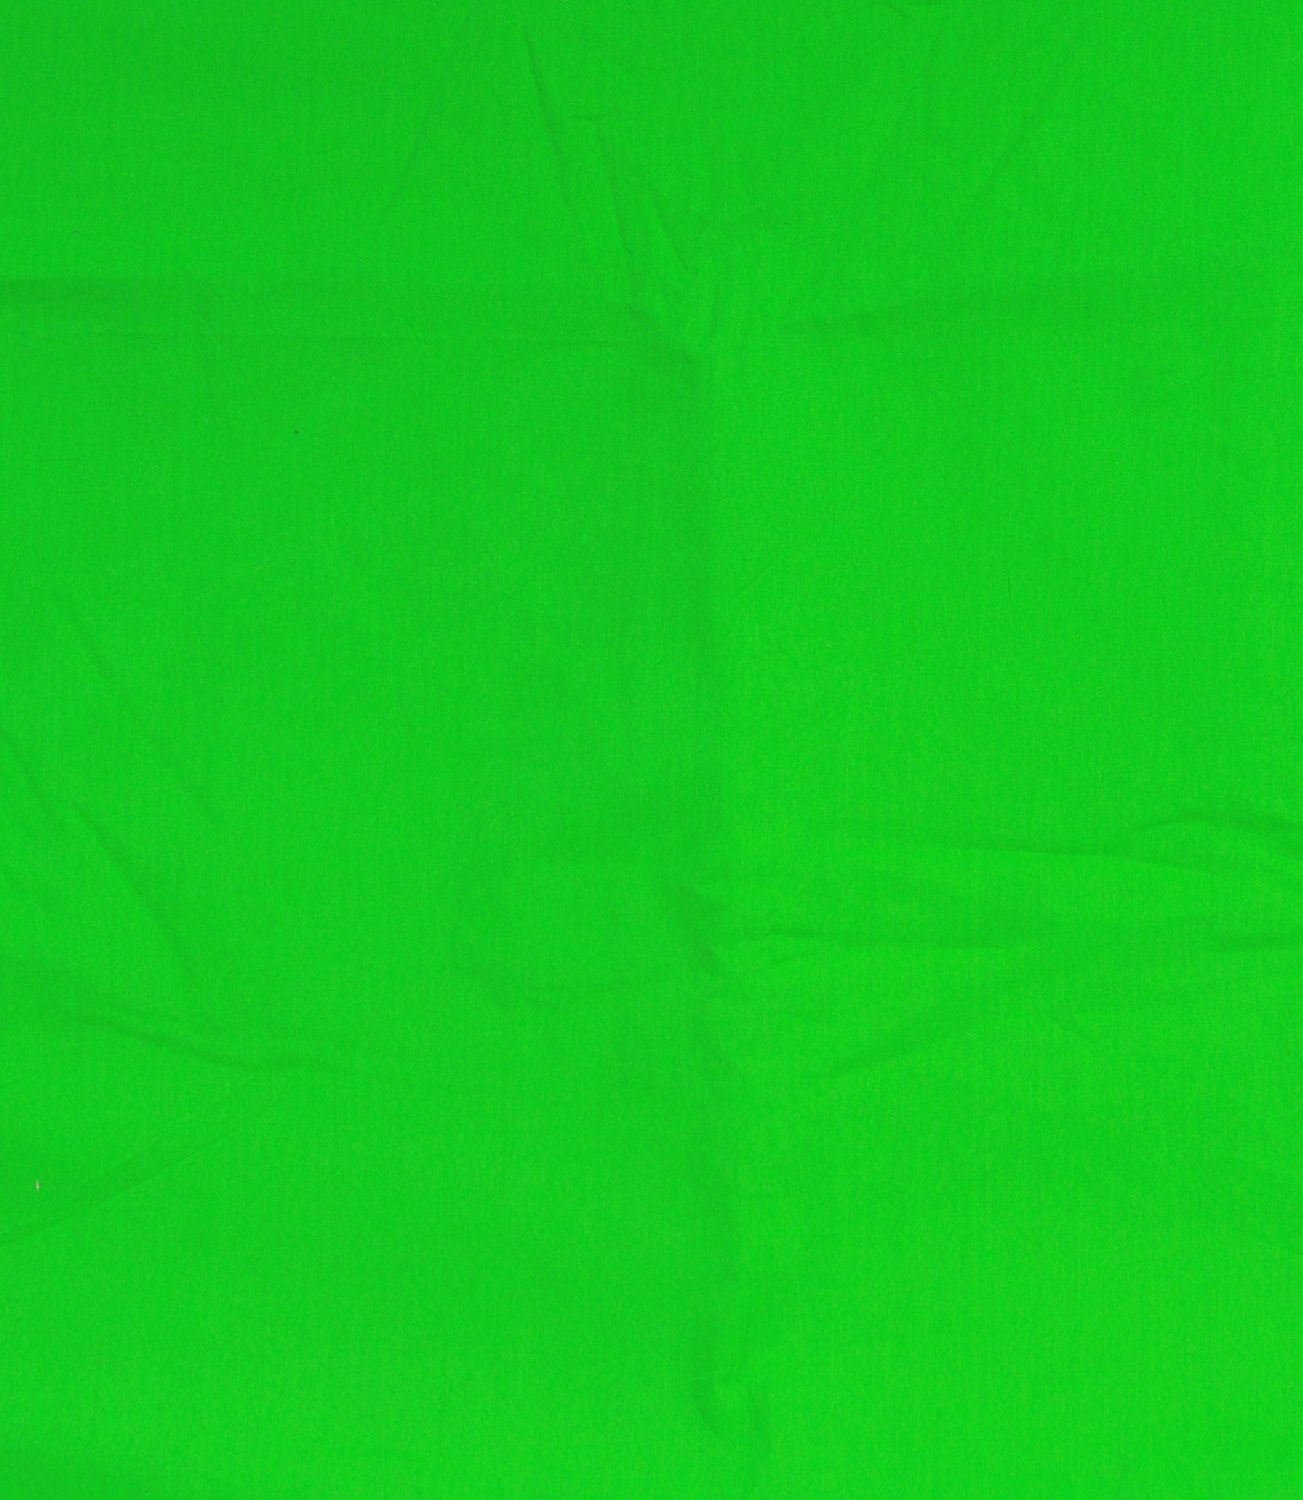 Free download Pics Photos Green Screen Backgrounds The